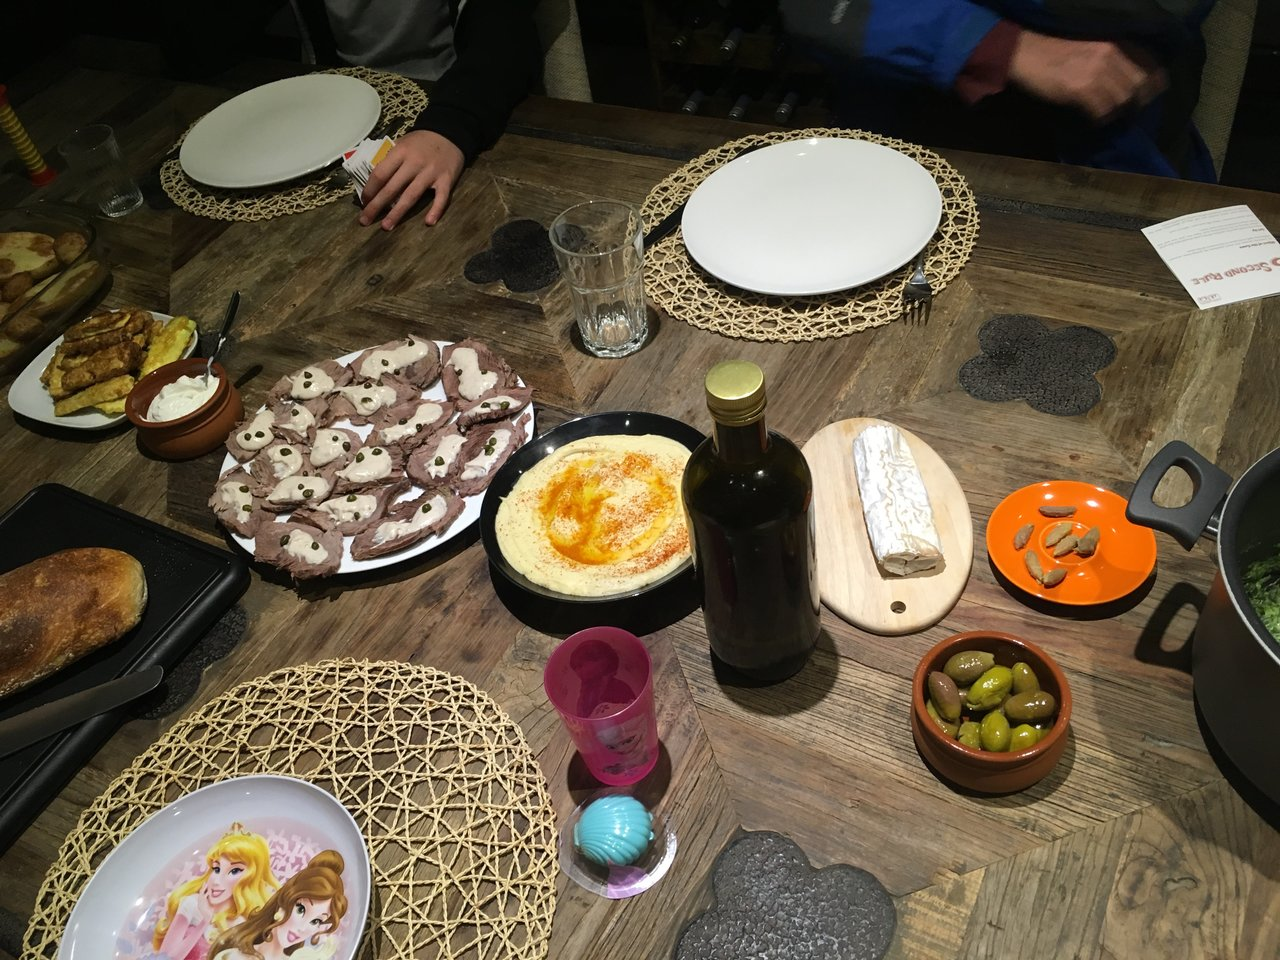 Our beautiful meal! | Photo taken by Linley V